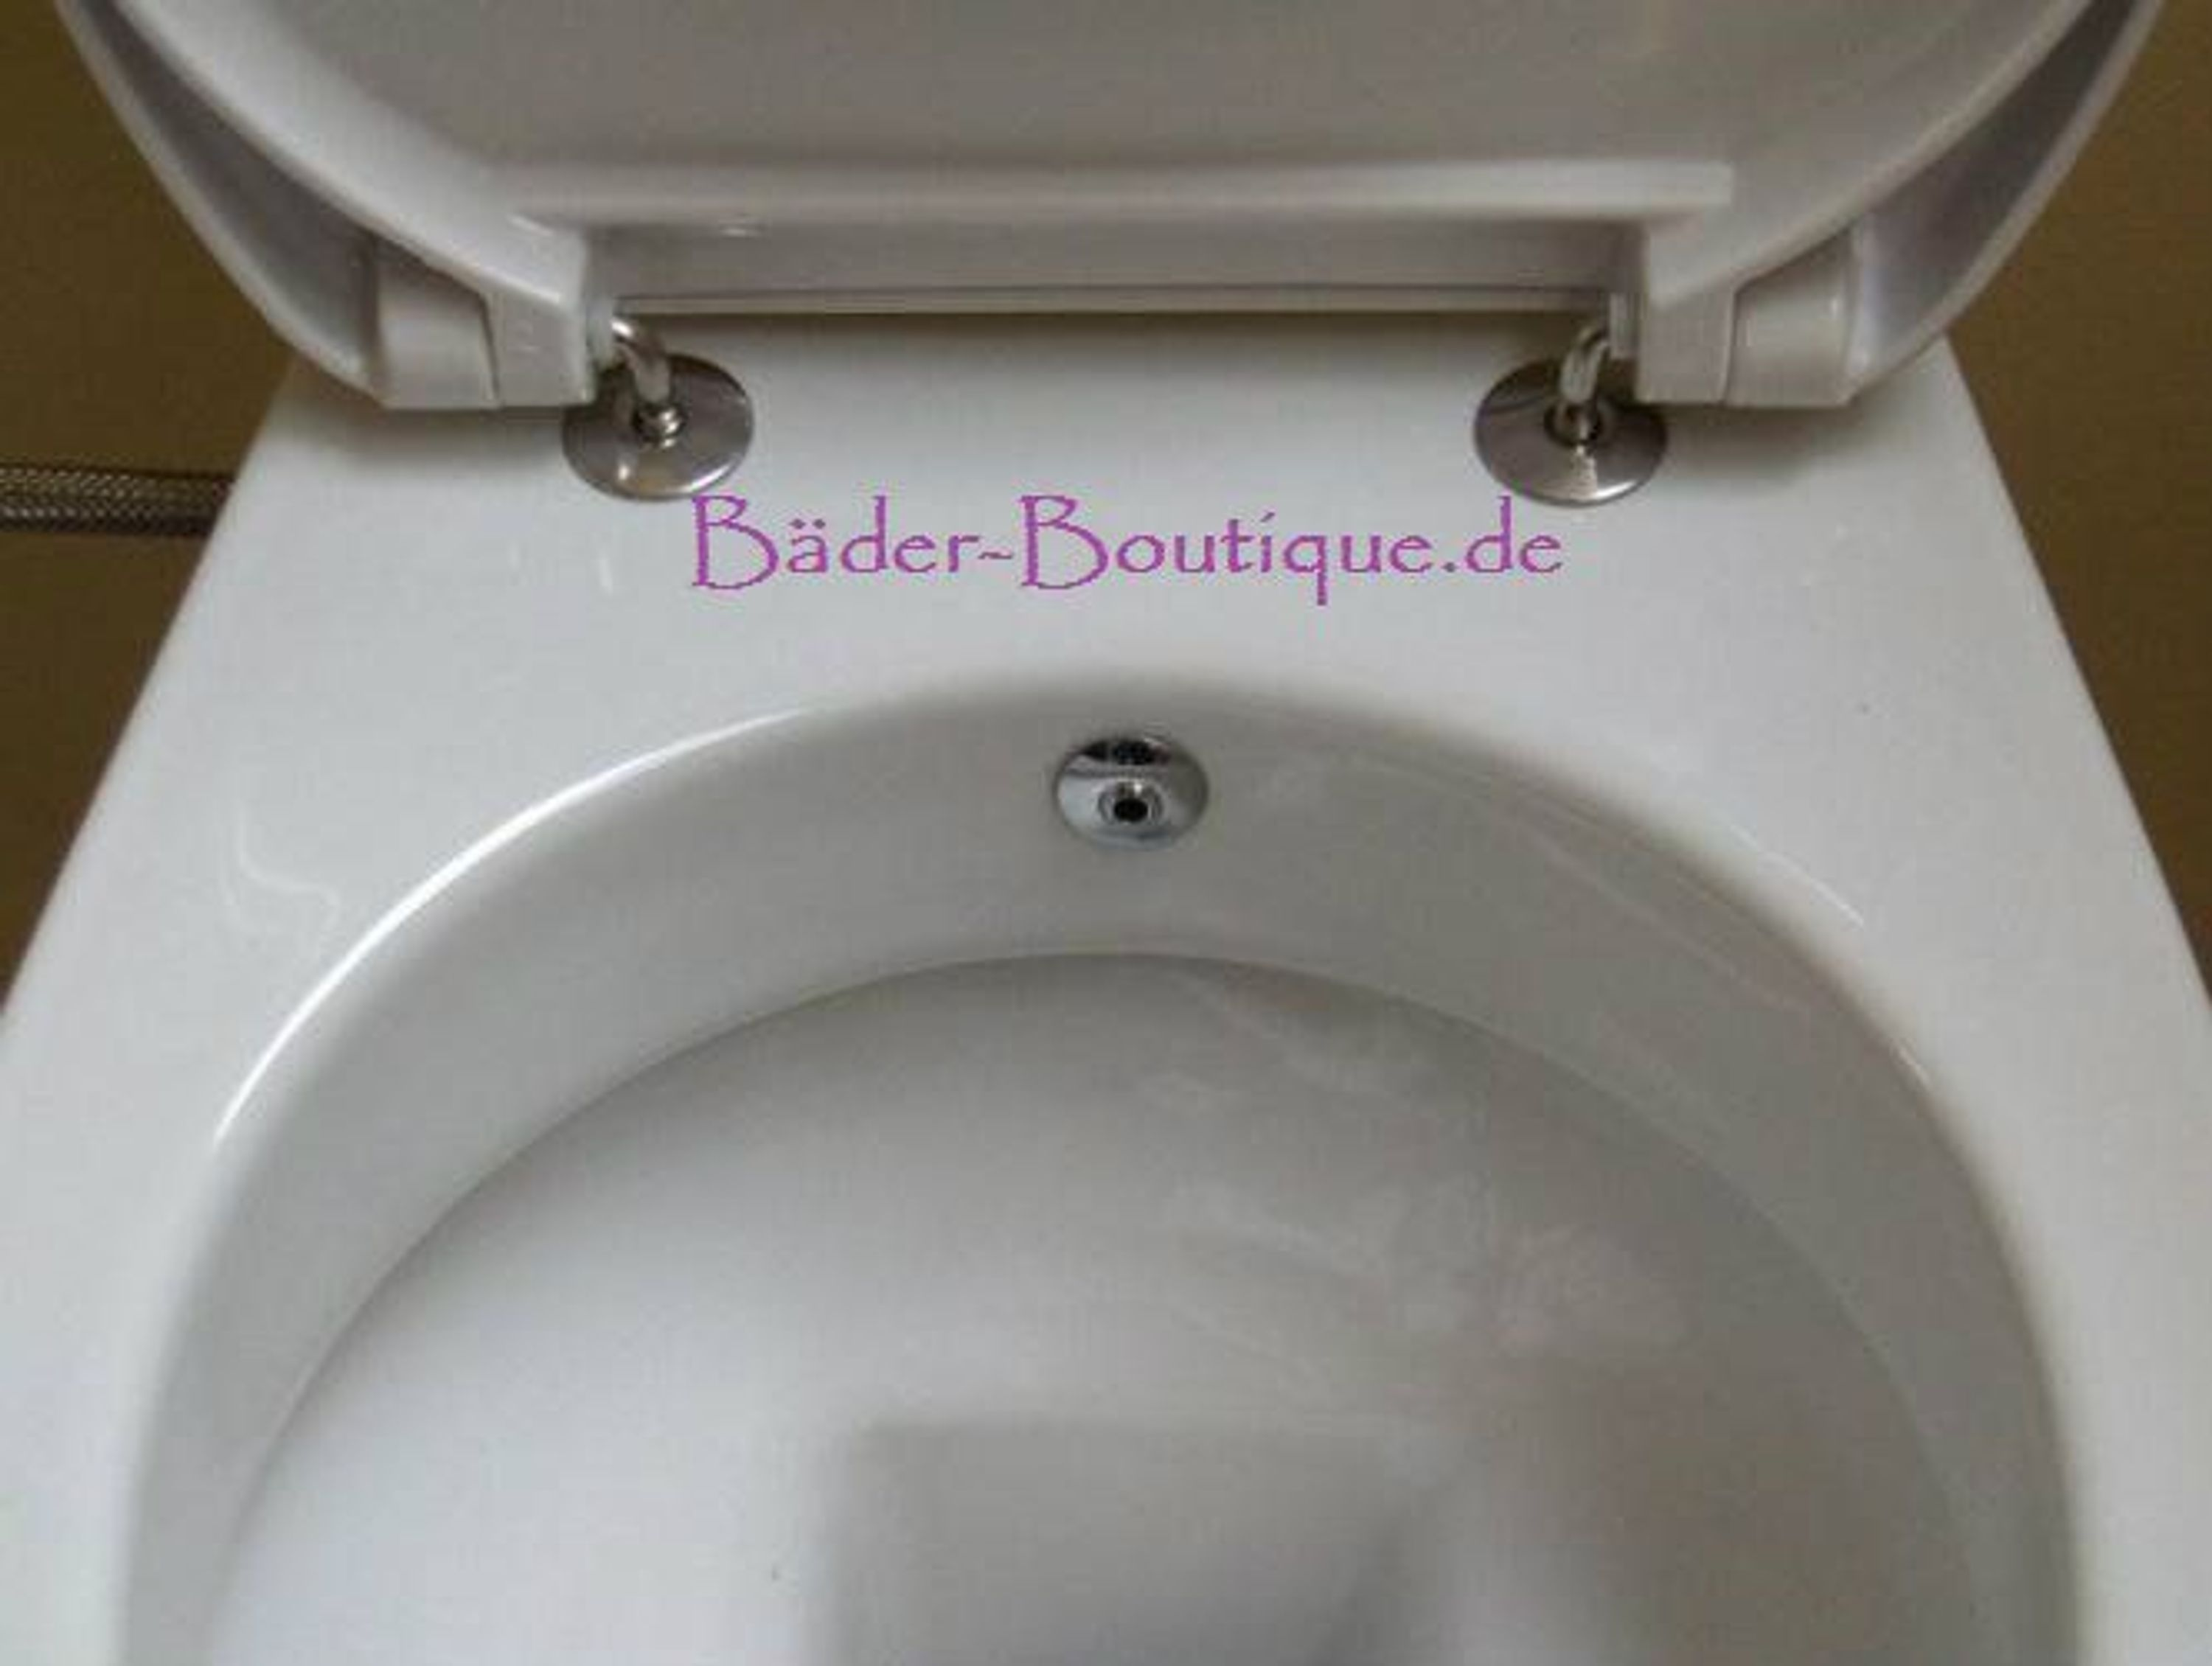 wand wc mit dusche wand wc mit bidet funktion tahara bidet marken produkt kaufen bei. Black Bedroom Furniture Sets. Home Design Ideas